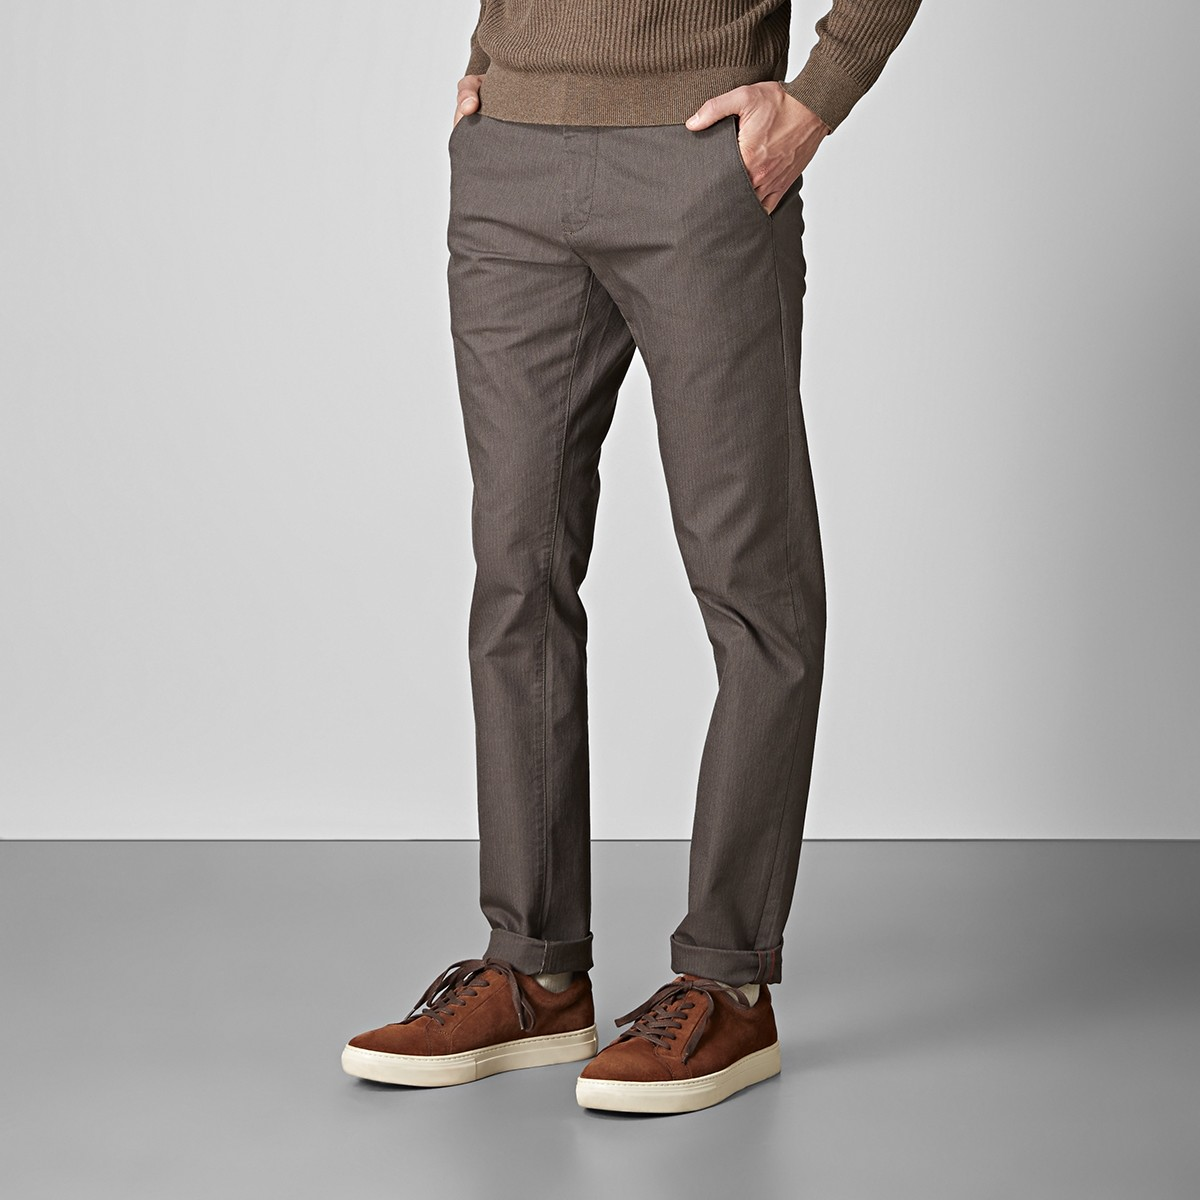 Bowery Stretch Chinos Brun 2 | East West | Brothers.se